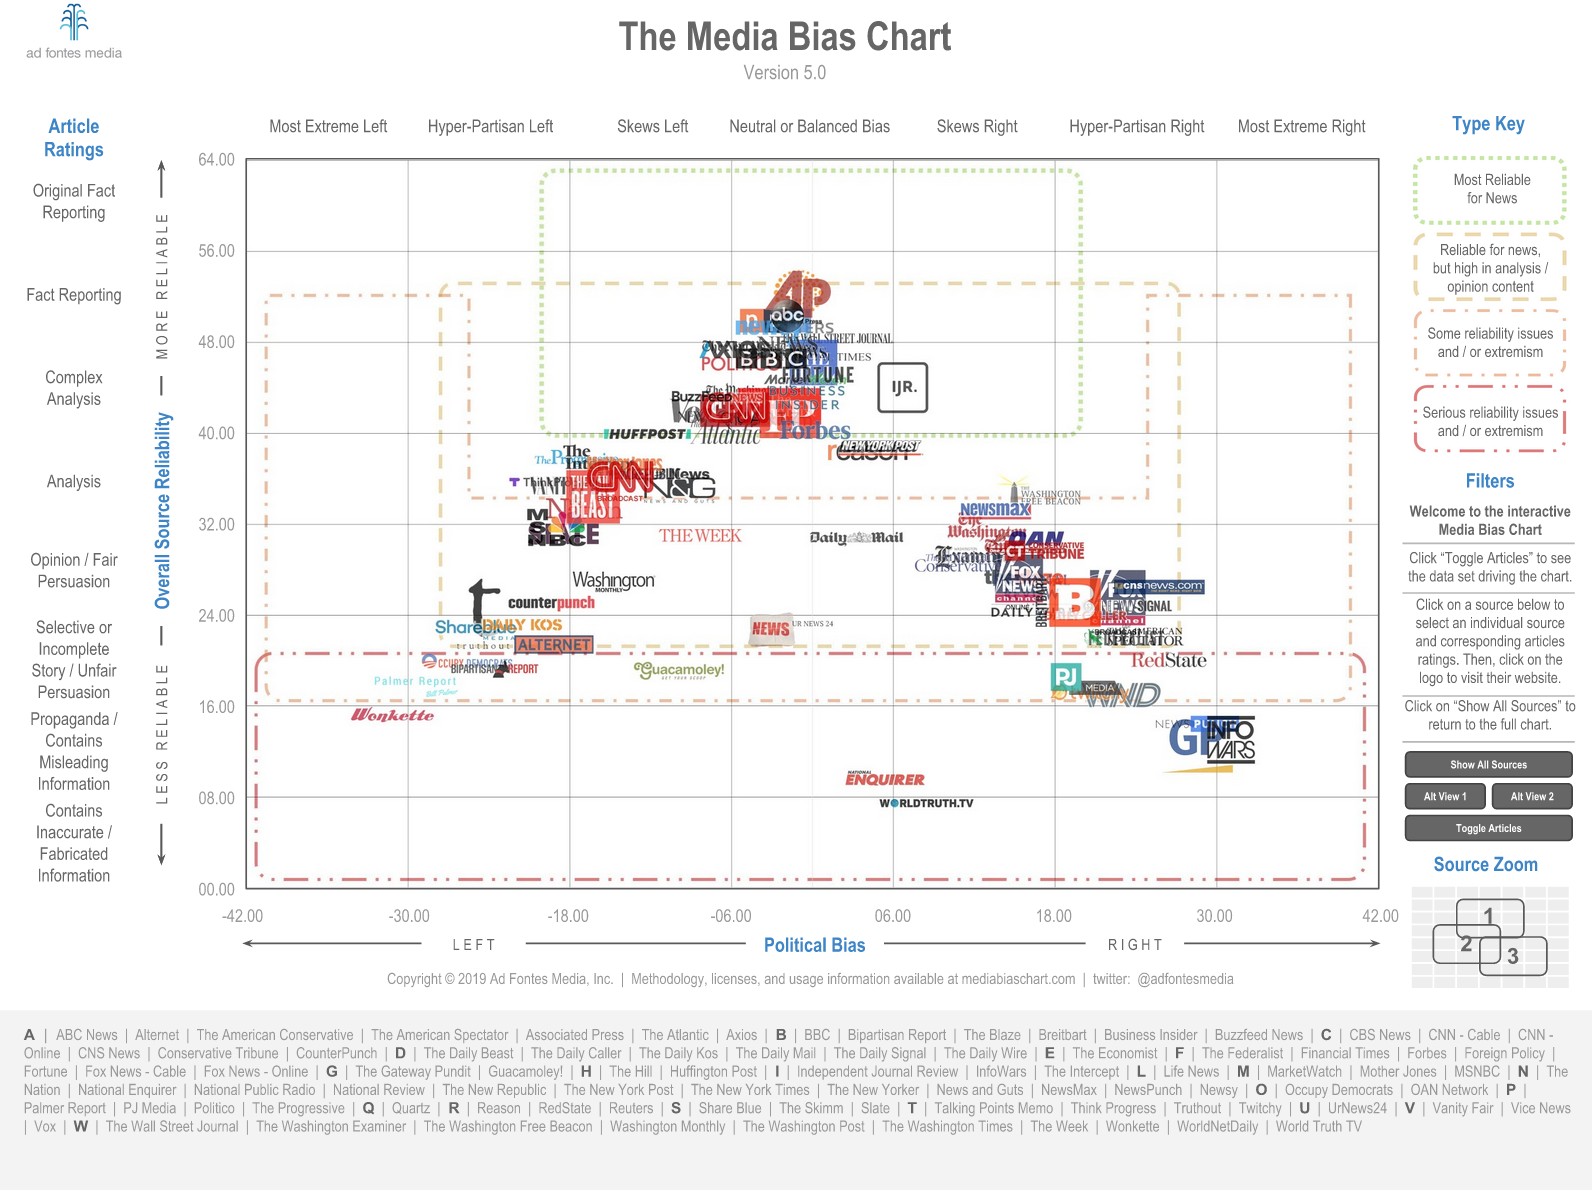 Chart with media sources and their bias